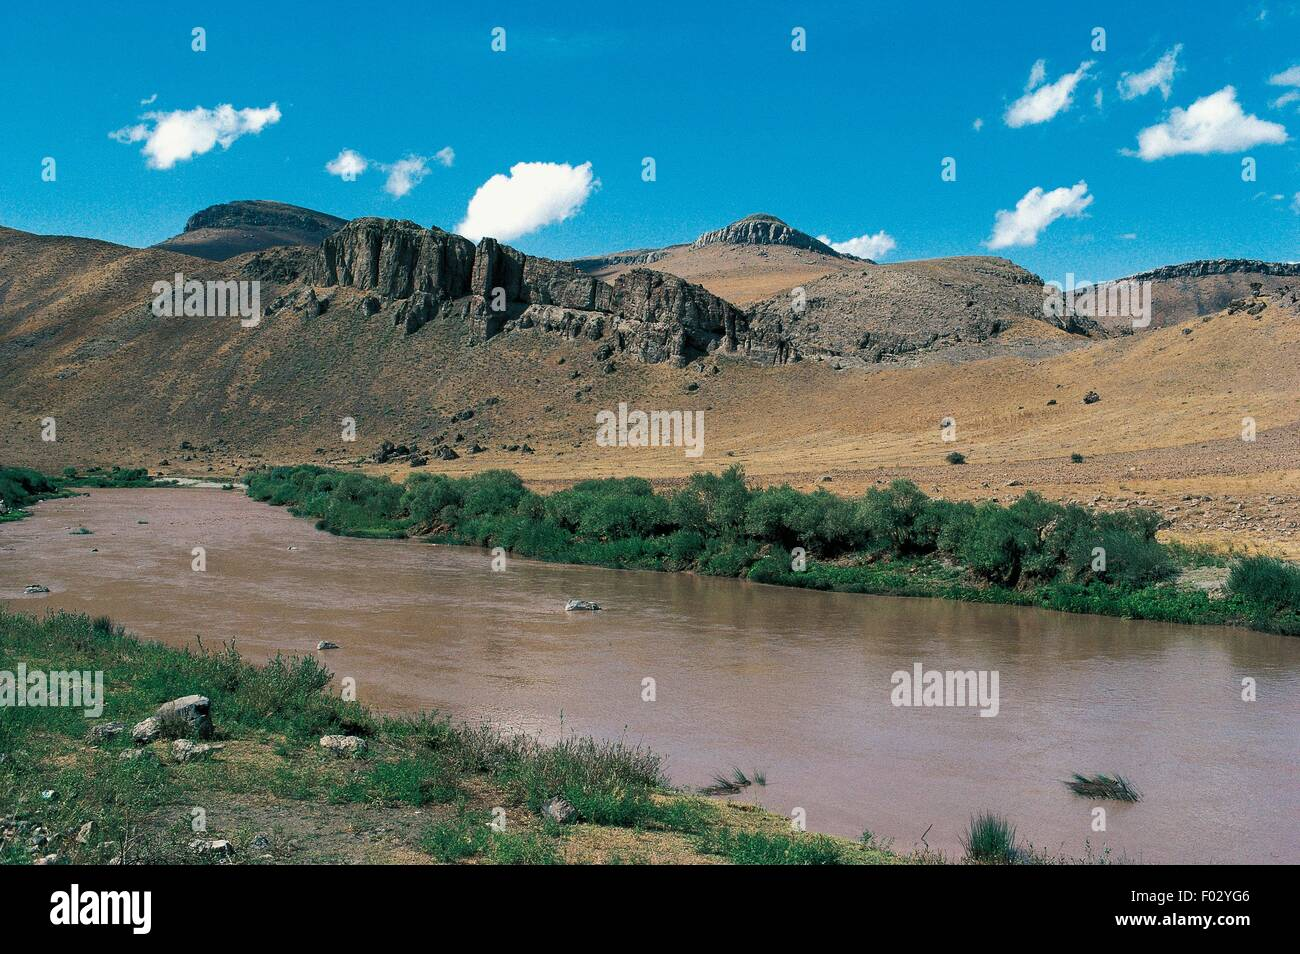 The Murat River, the major source of the Euphrates, Van Province, Eastern Turkey. - Stock Image